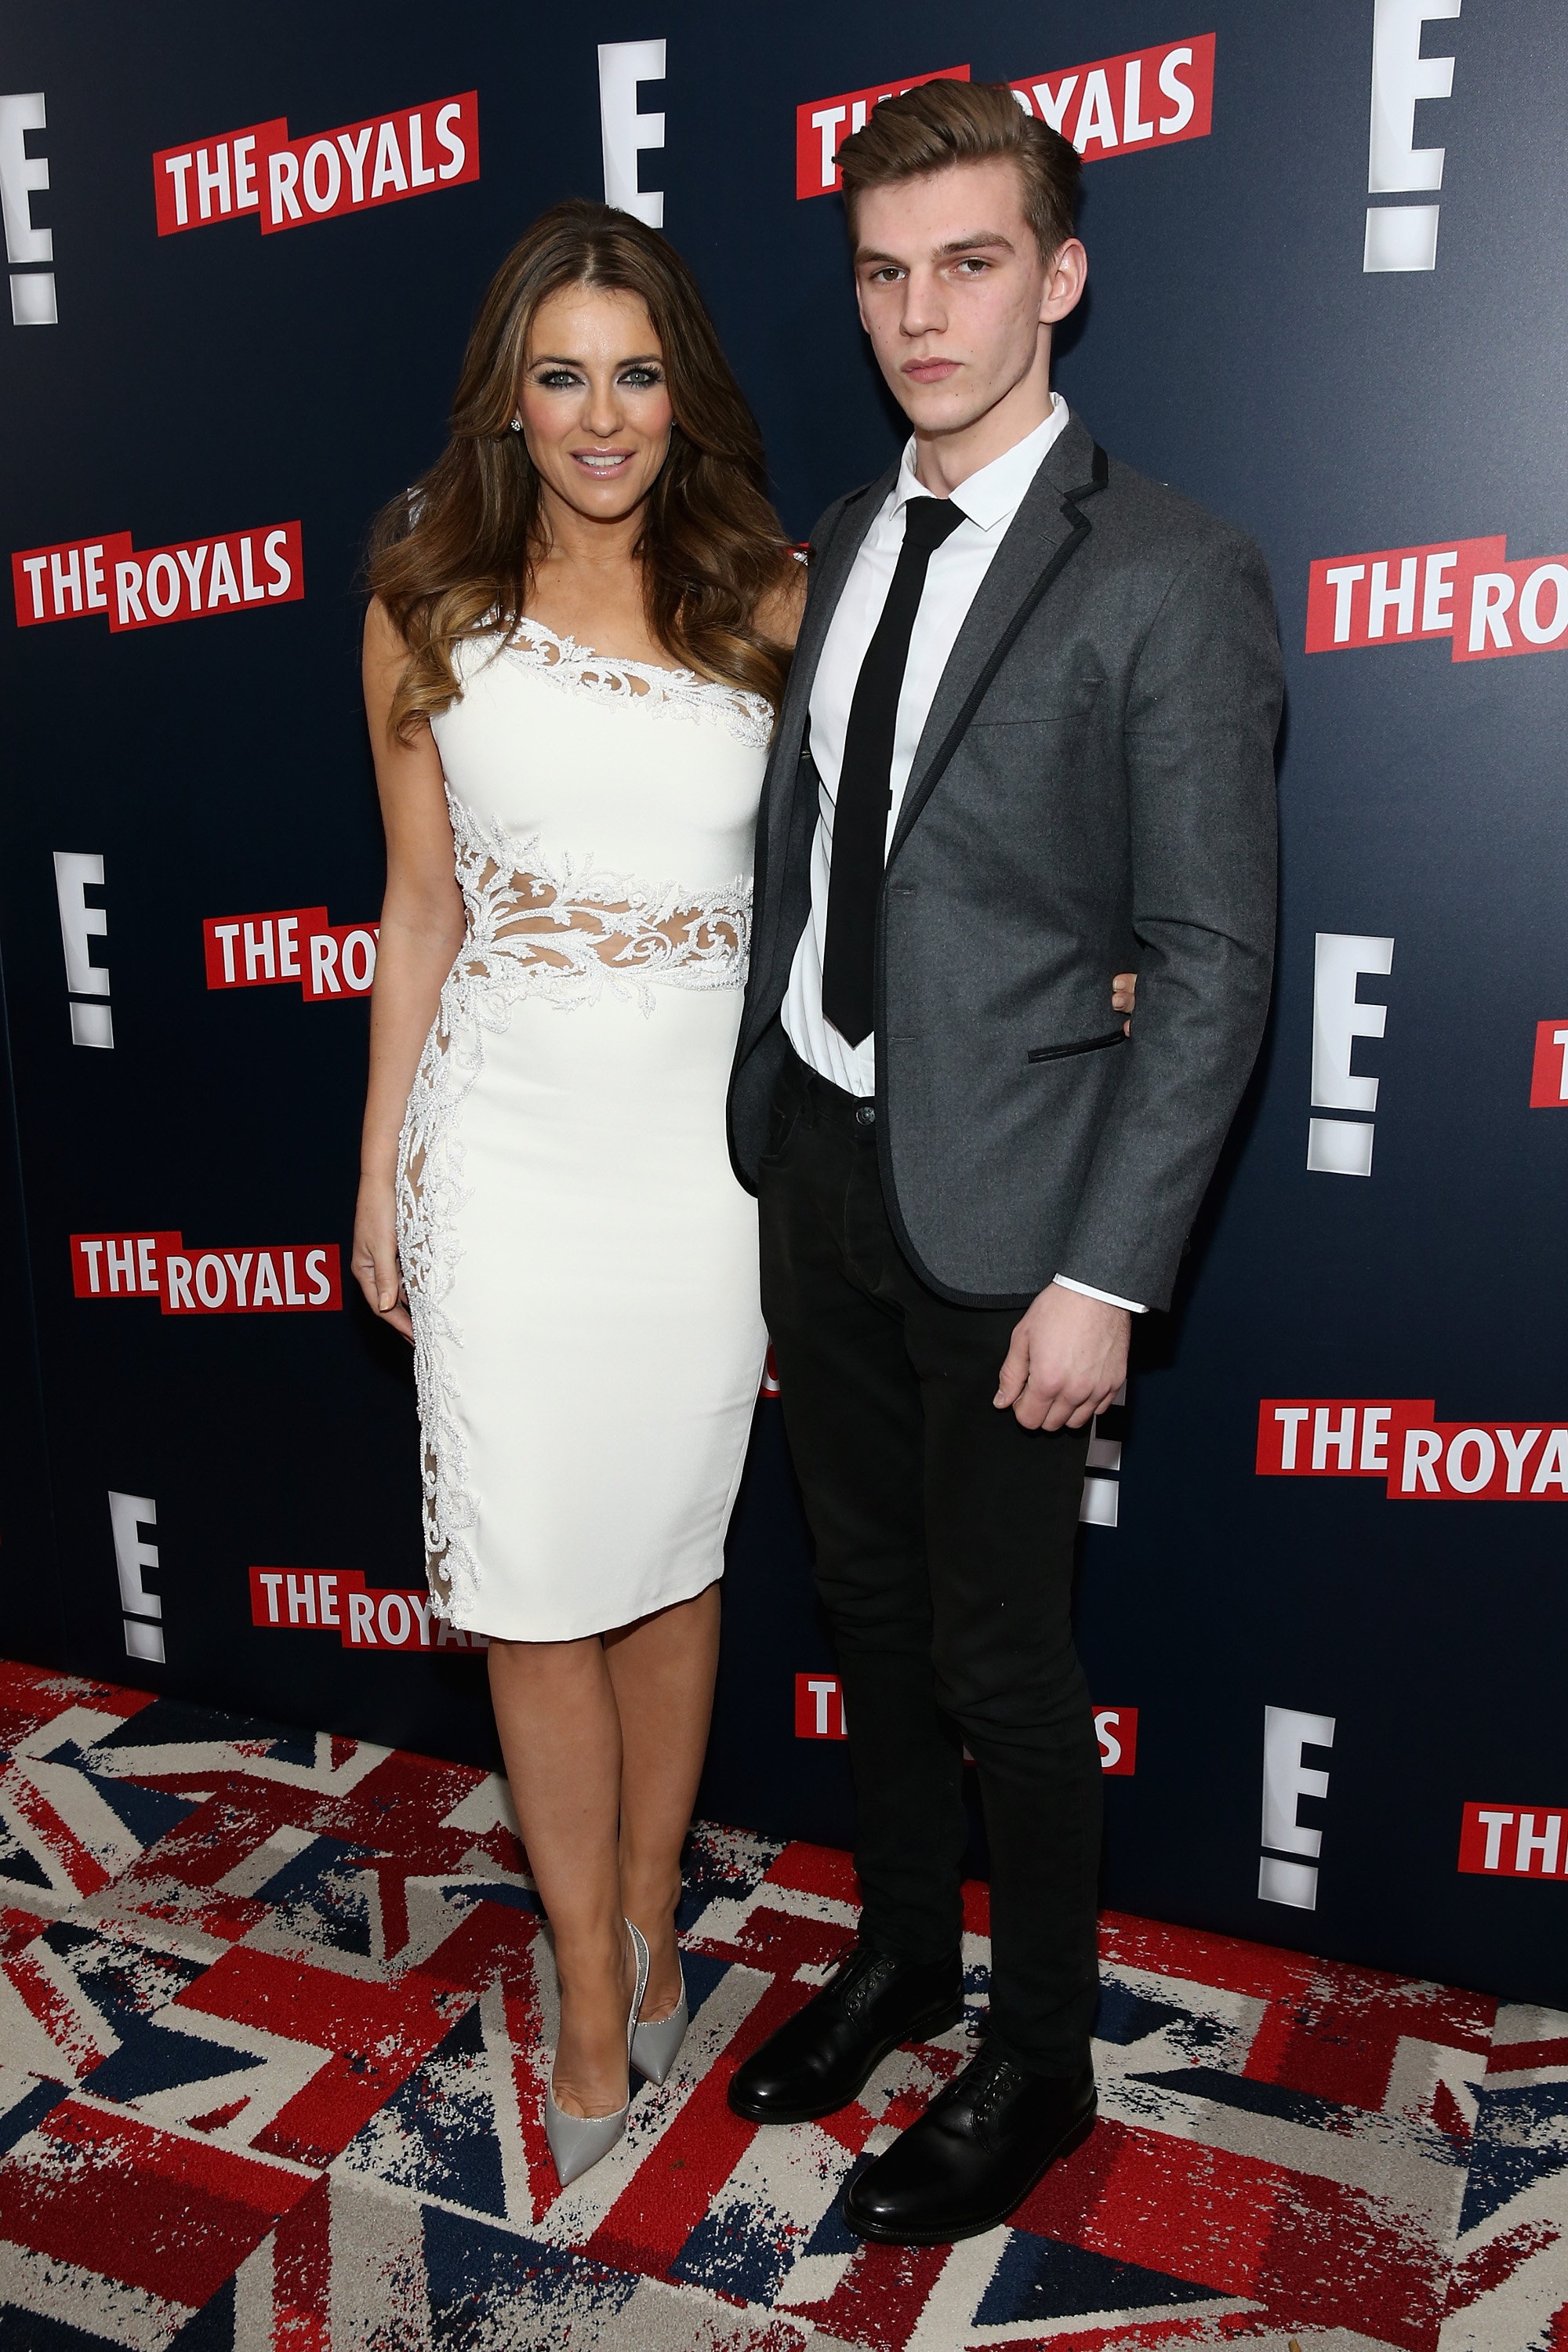 Elizabeth-Hurley-Reveals-Her-21-Year-Old-Nephew-Miles-Hurley-Was-Stabbed-Multiple-Times-In-A-Brutal-Attack